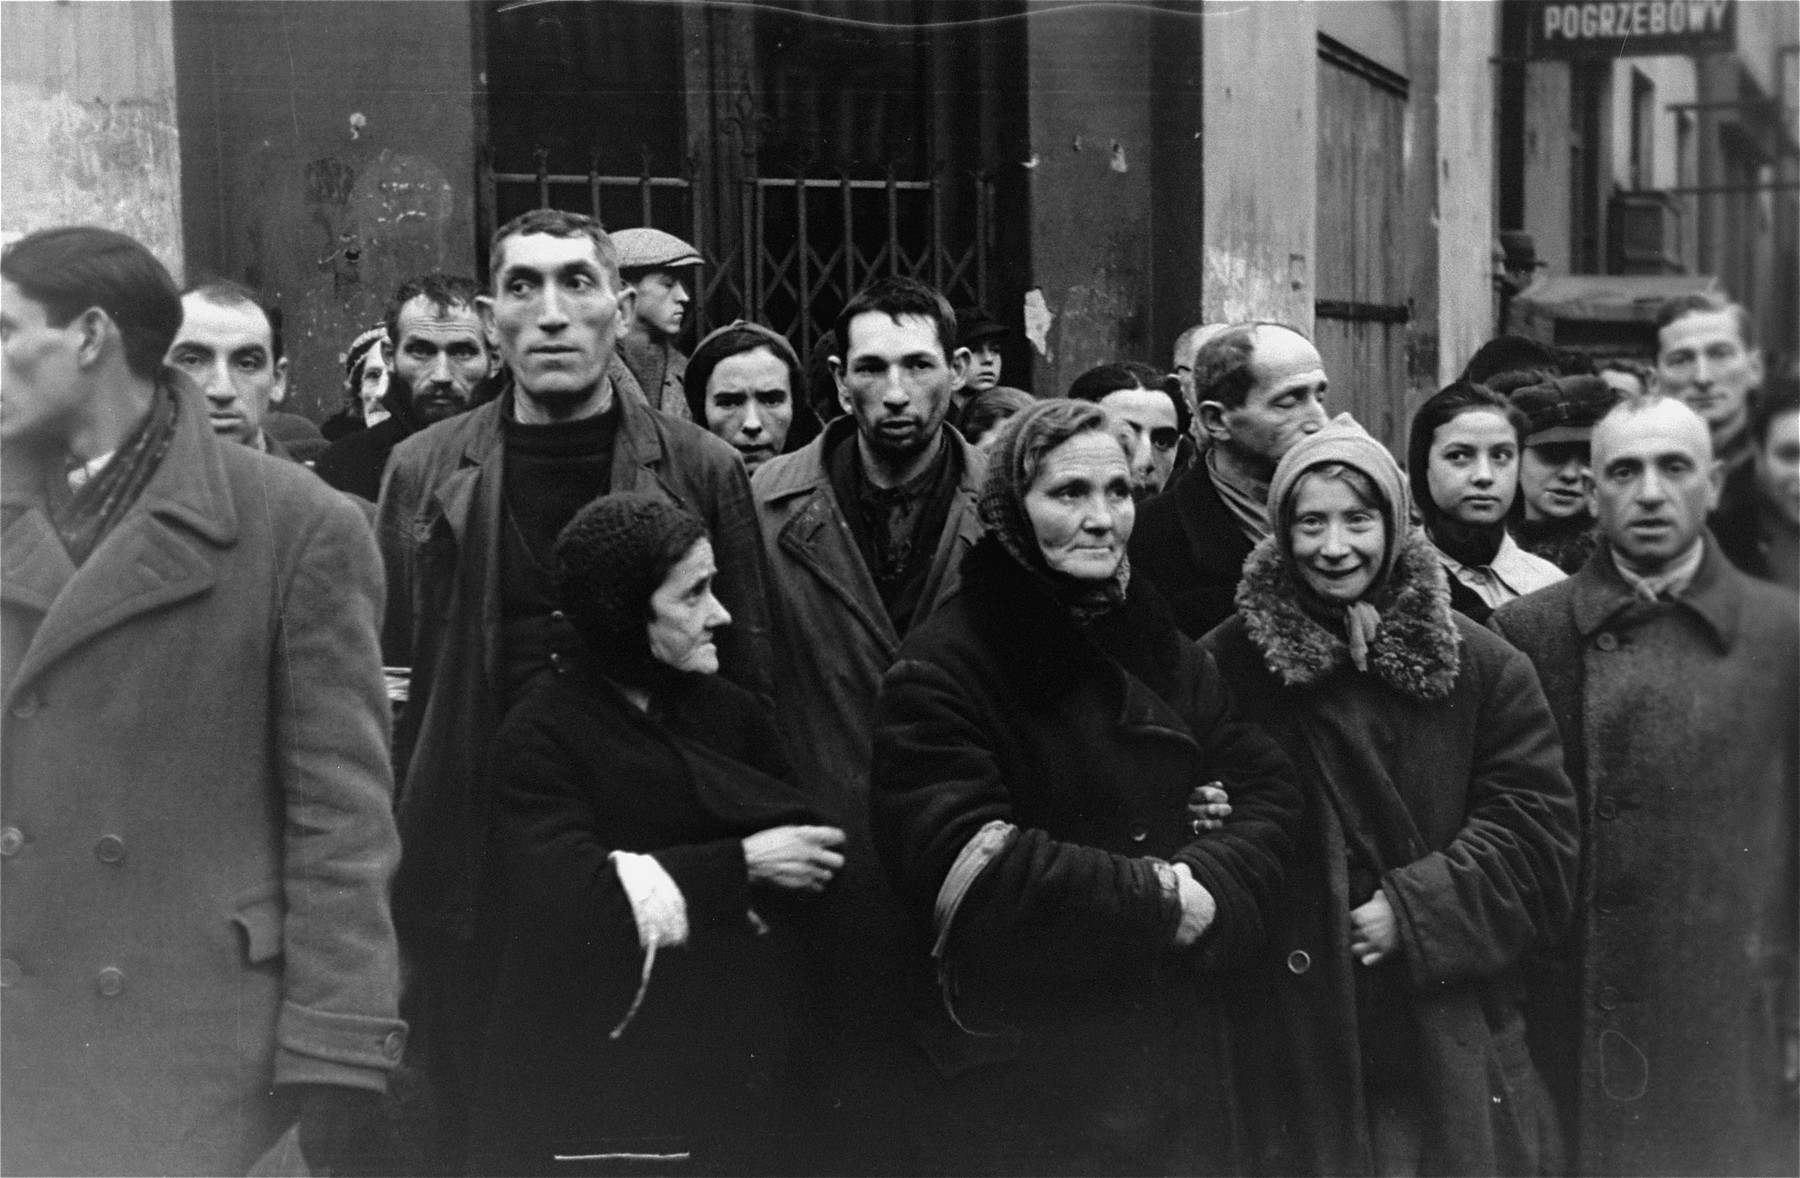 Jewish men standing among a crowd of people on a street in the Warsaw ghetto, doff their hats to the photographer, in accordance with the German order requiring Jews to remove their hats in the presence of German personnel.